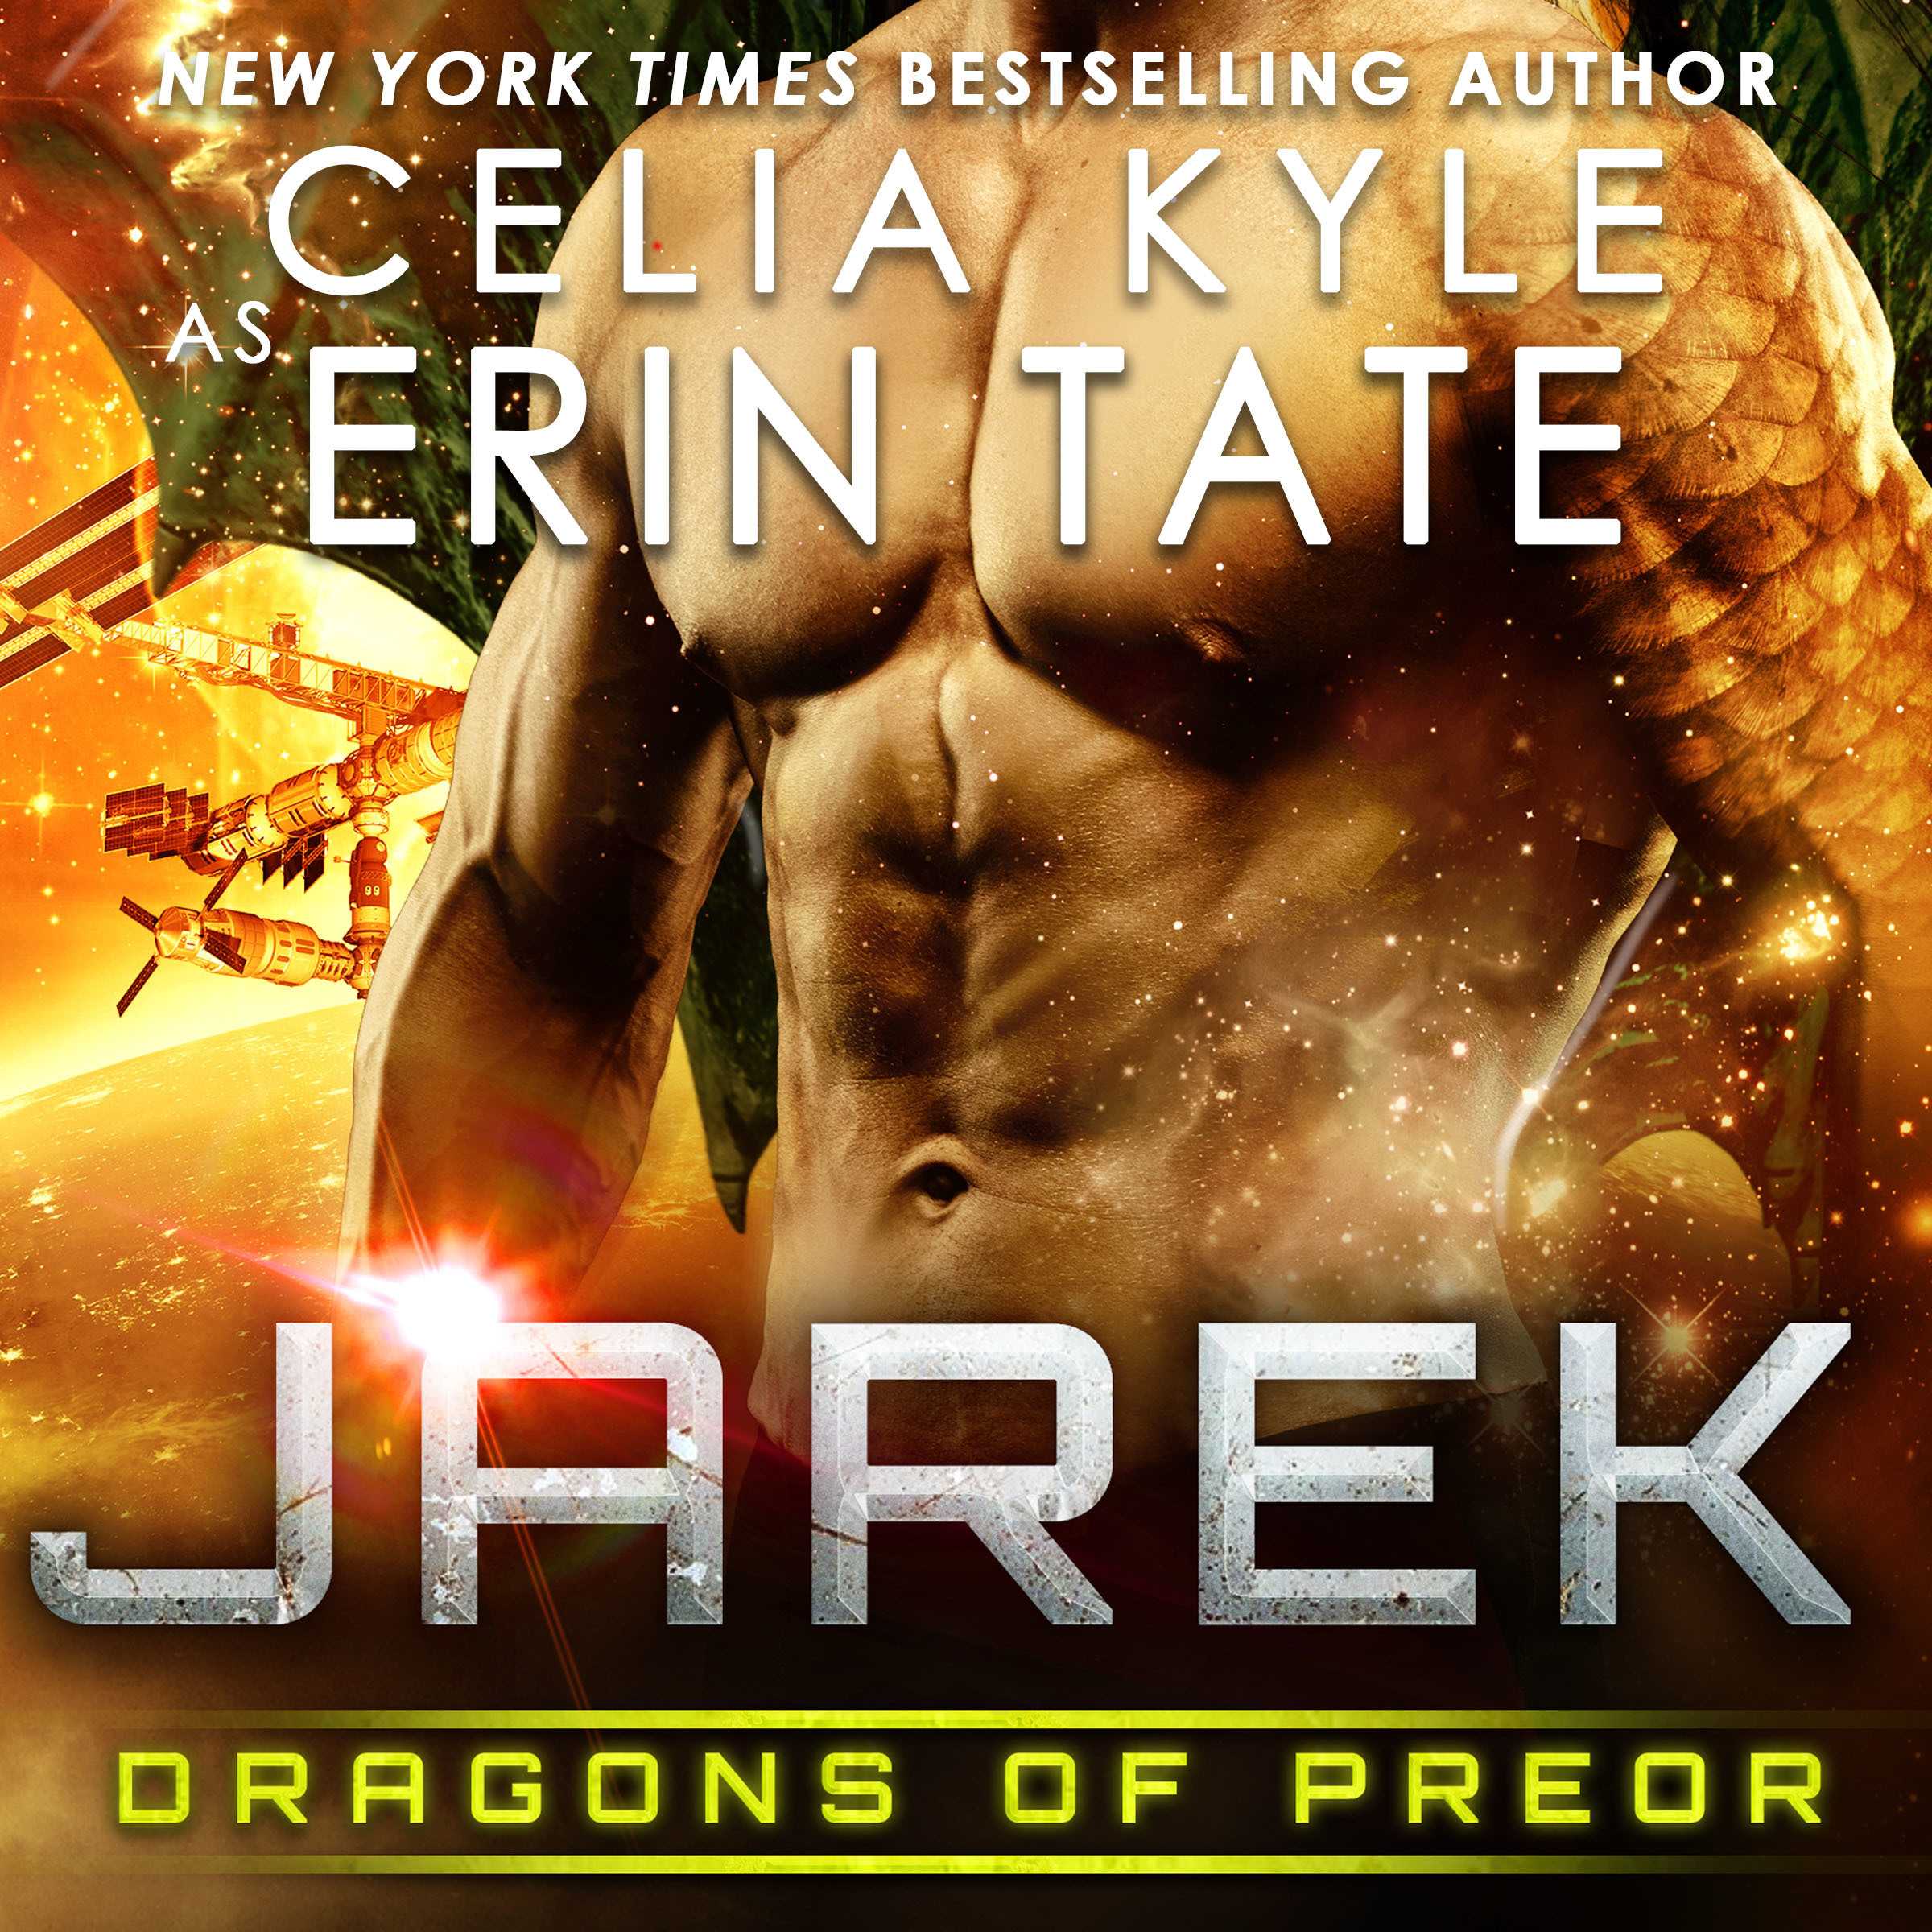 Printable Jarek: Dragons of Preor Book 1 Audiobook Cover Art